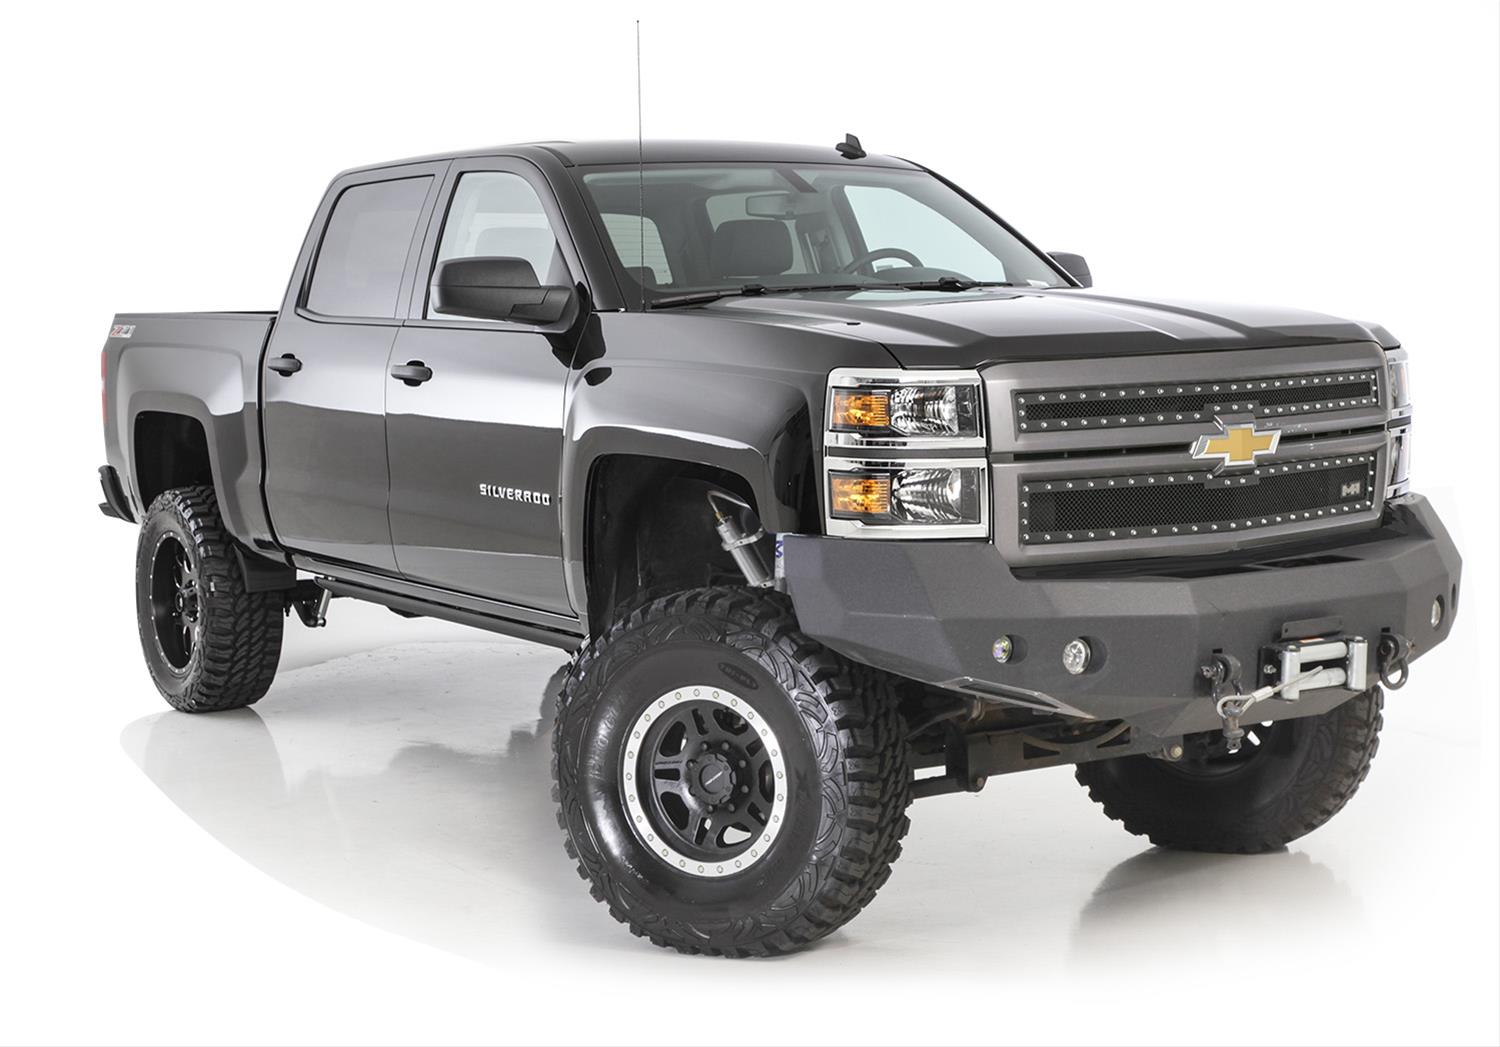 2012 chevrolet silverado 2500 hd smittybilt m1 front bumpers 612821 free shipping on orders. Black Bedroom Furniture Sets. Home Design Ideas